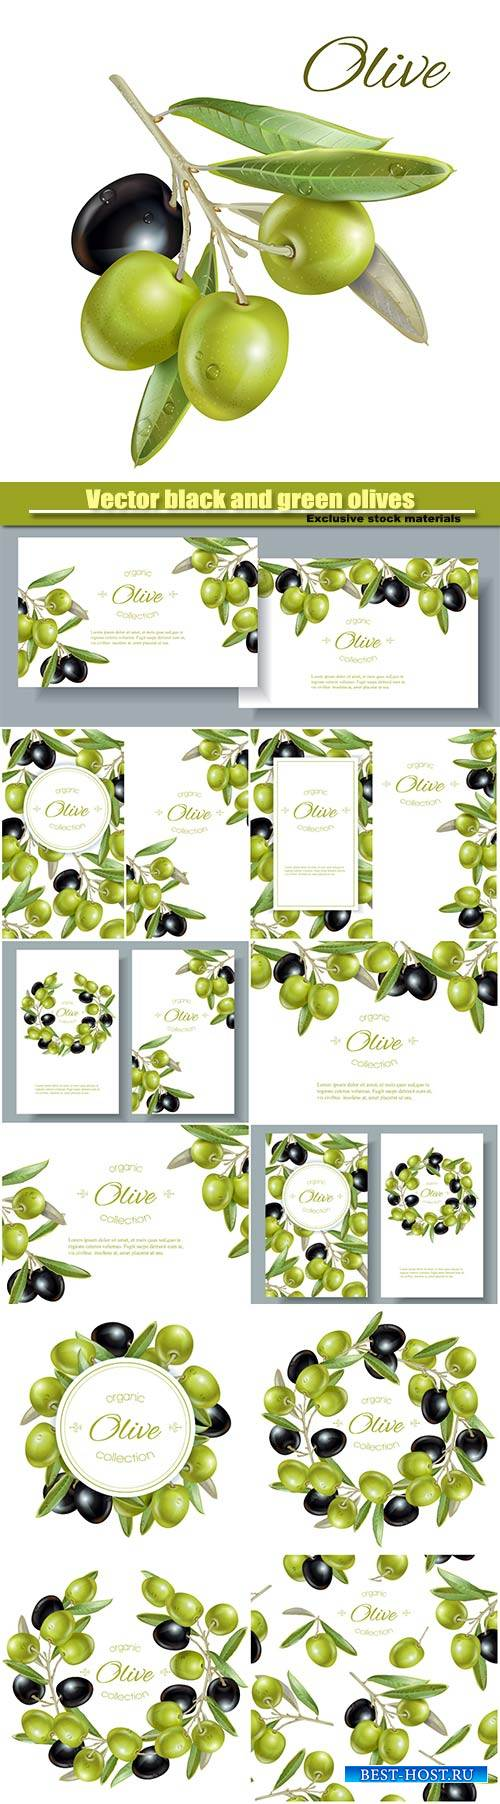 Vector black and green olives on white background